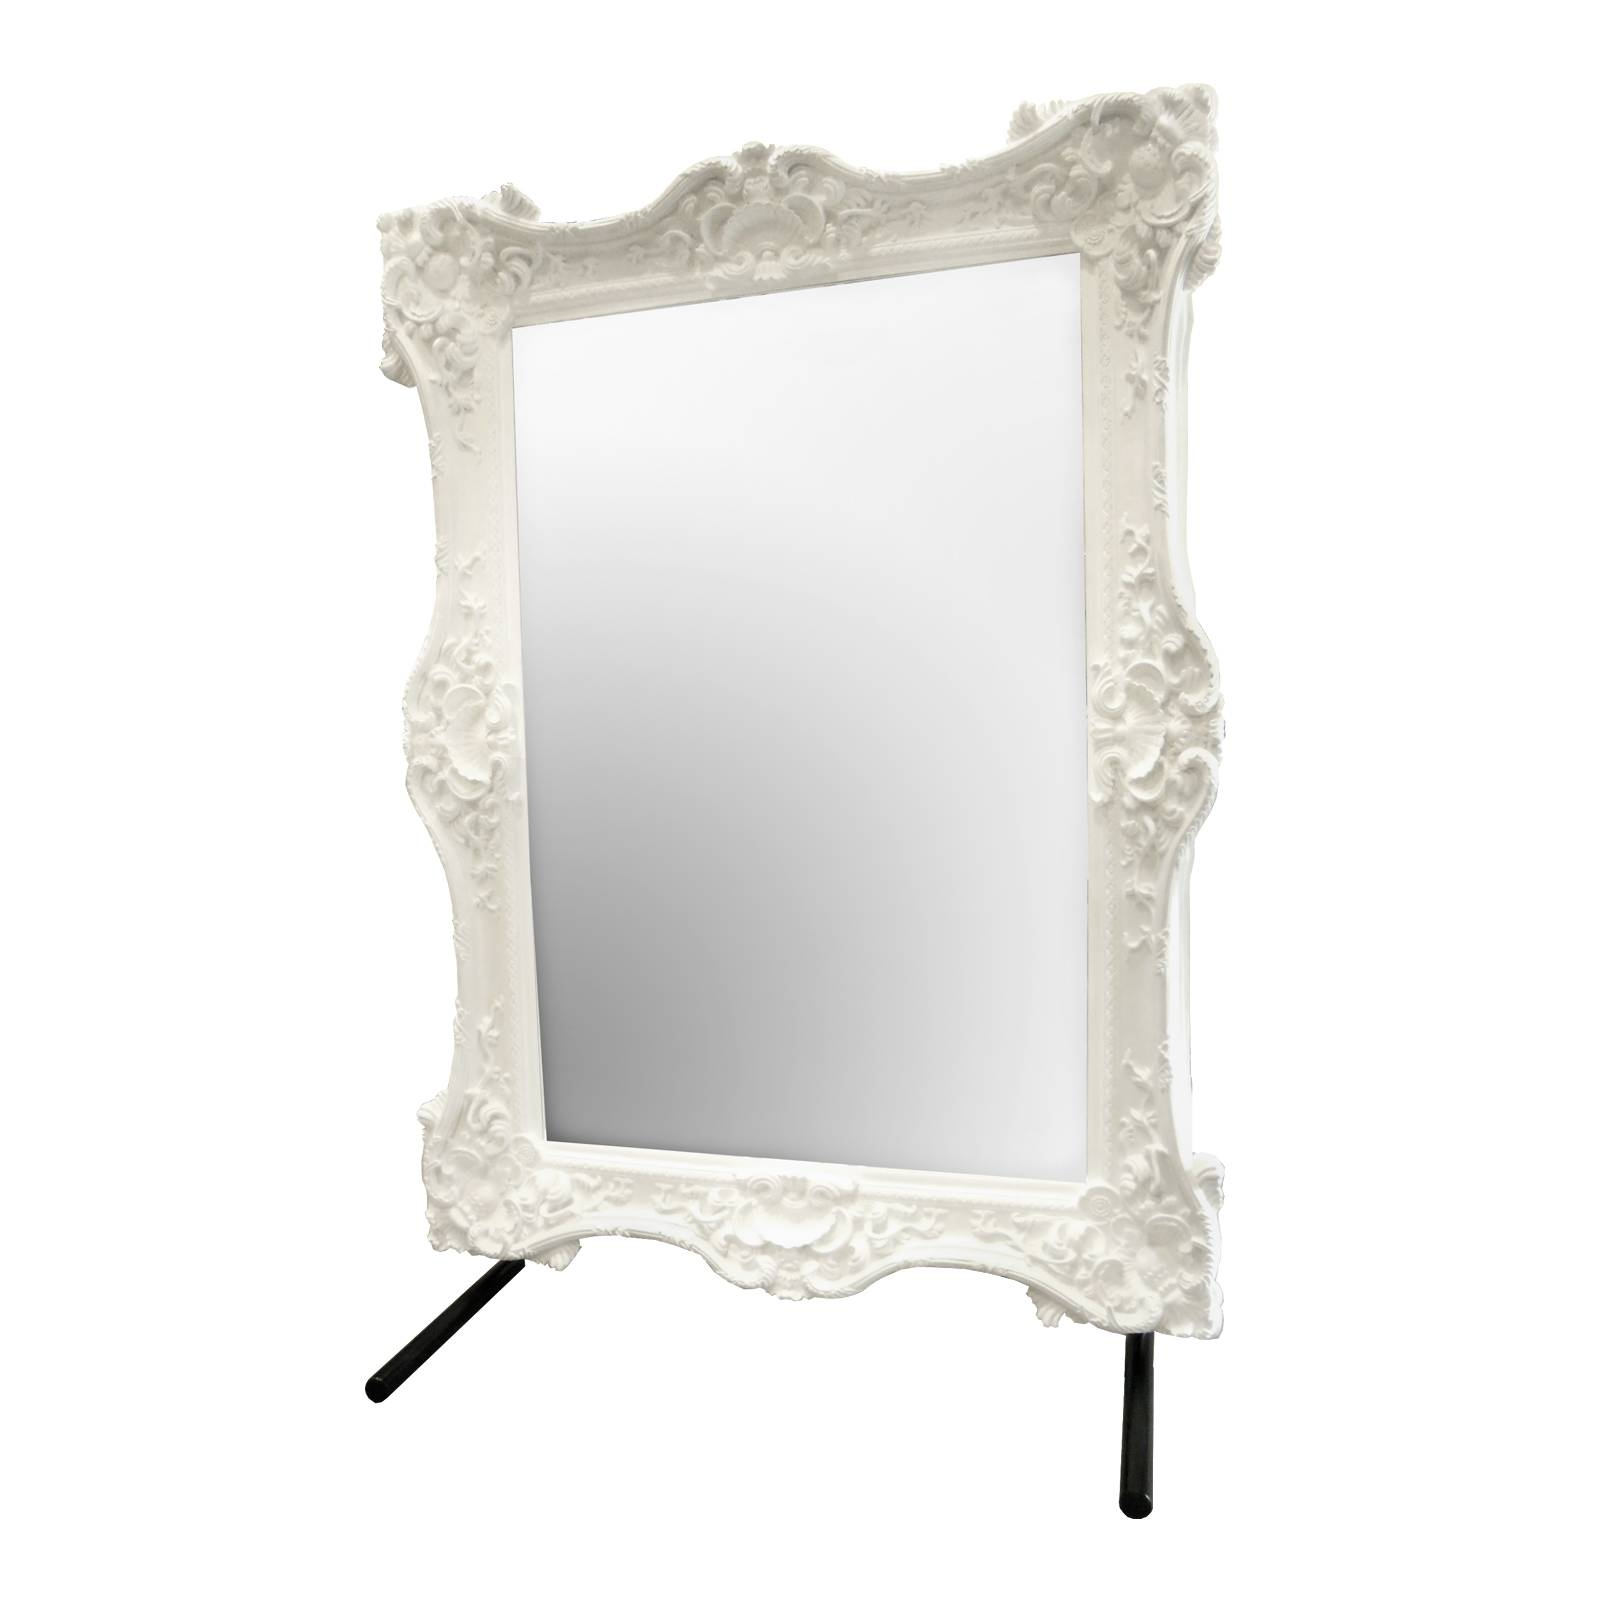 Floor Mirror Rentals | Event Furniture Rental | Delivery | Formdecor throughout Chrome Floor Mirrors (Image 8 of 25)